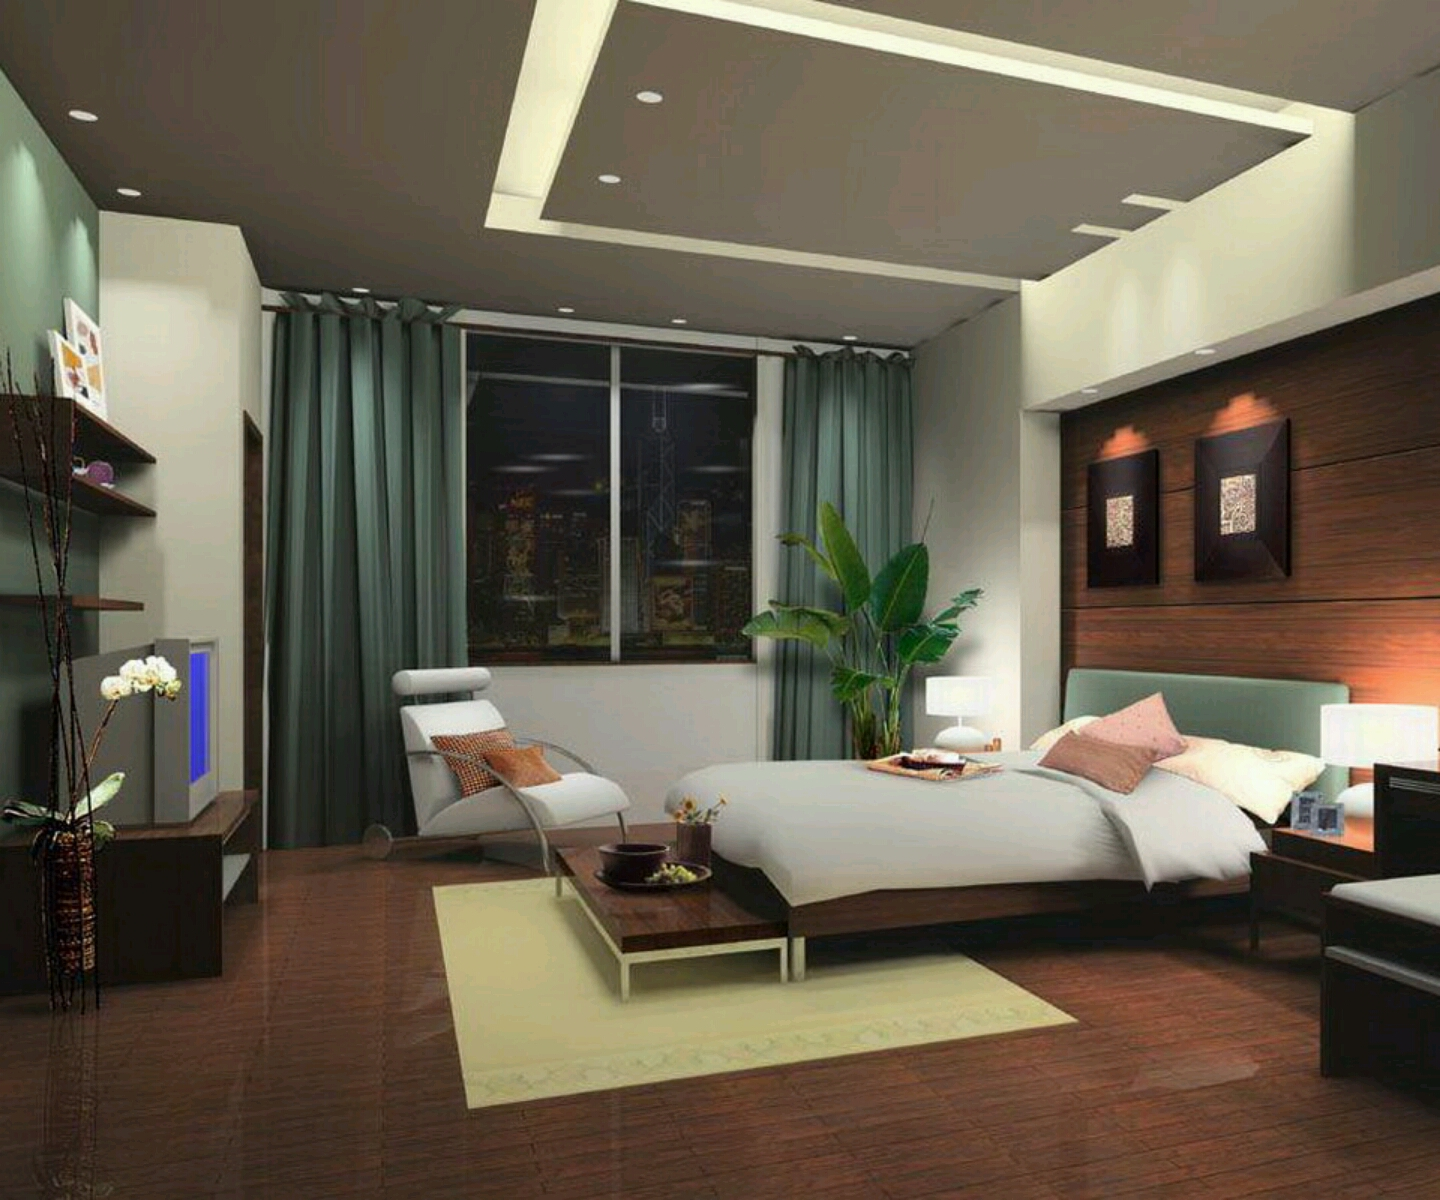 New home designs latest modern bedrooms designs best ideas for Bedrooms decoration